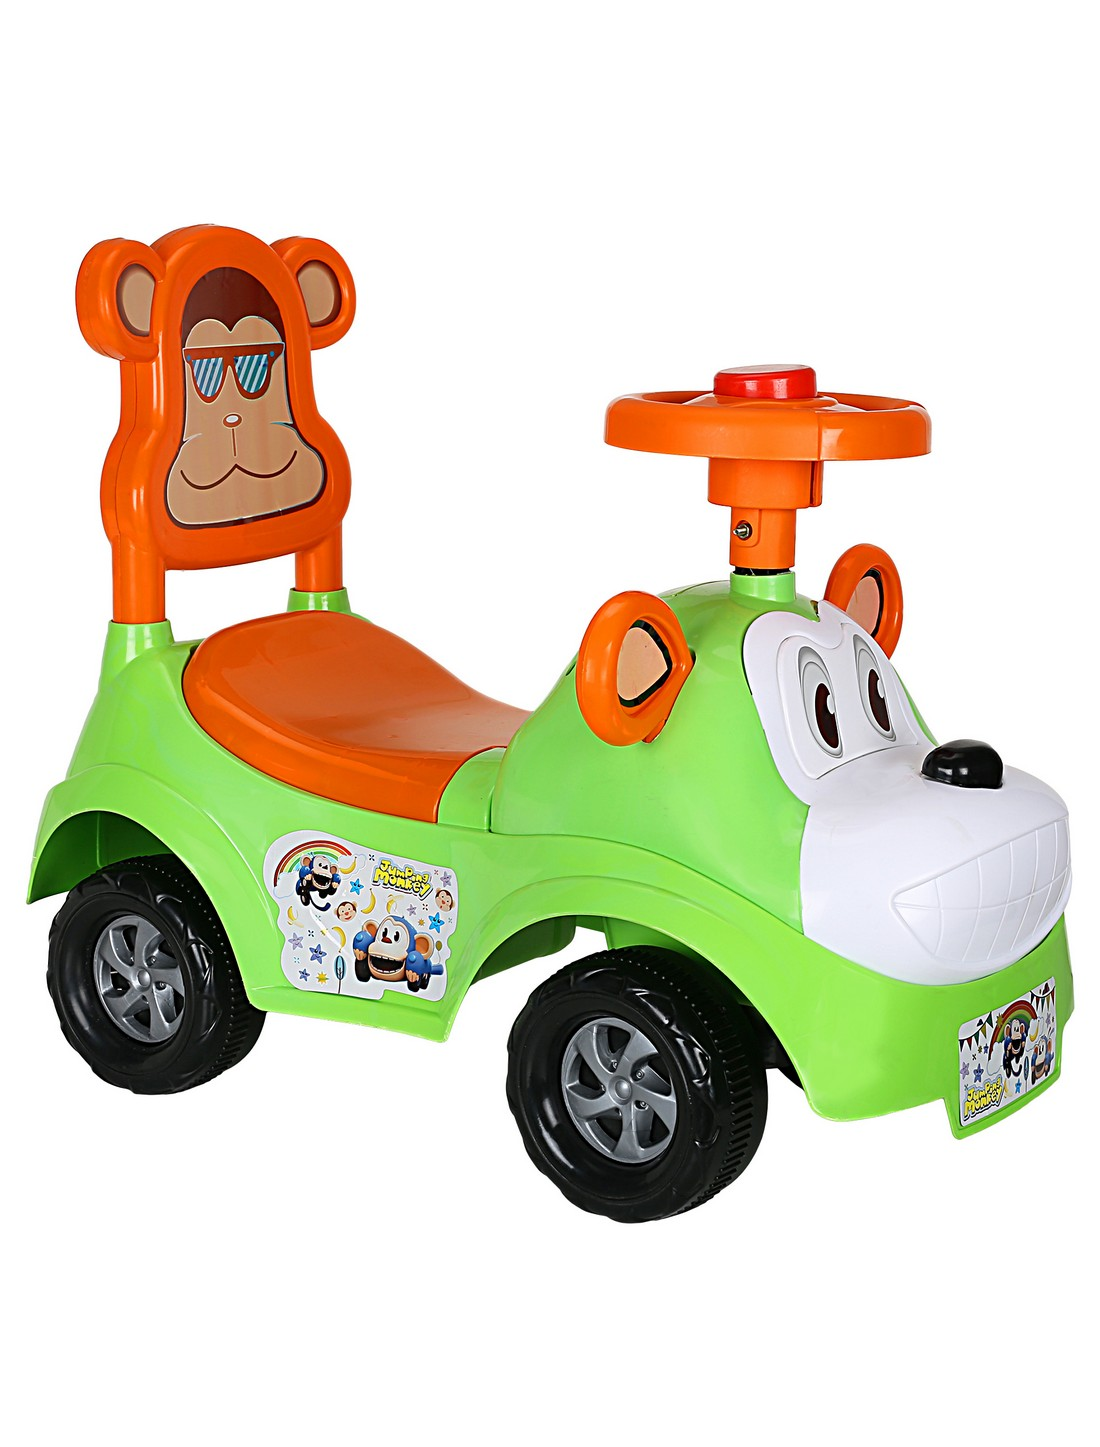 CREATURE | Creature Green Monkey Rider Ride-On Cars Toy Vehicle for Kids